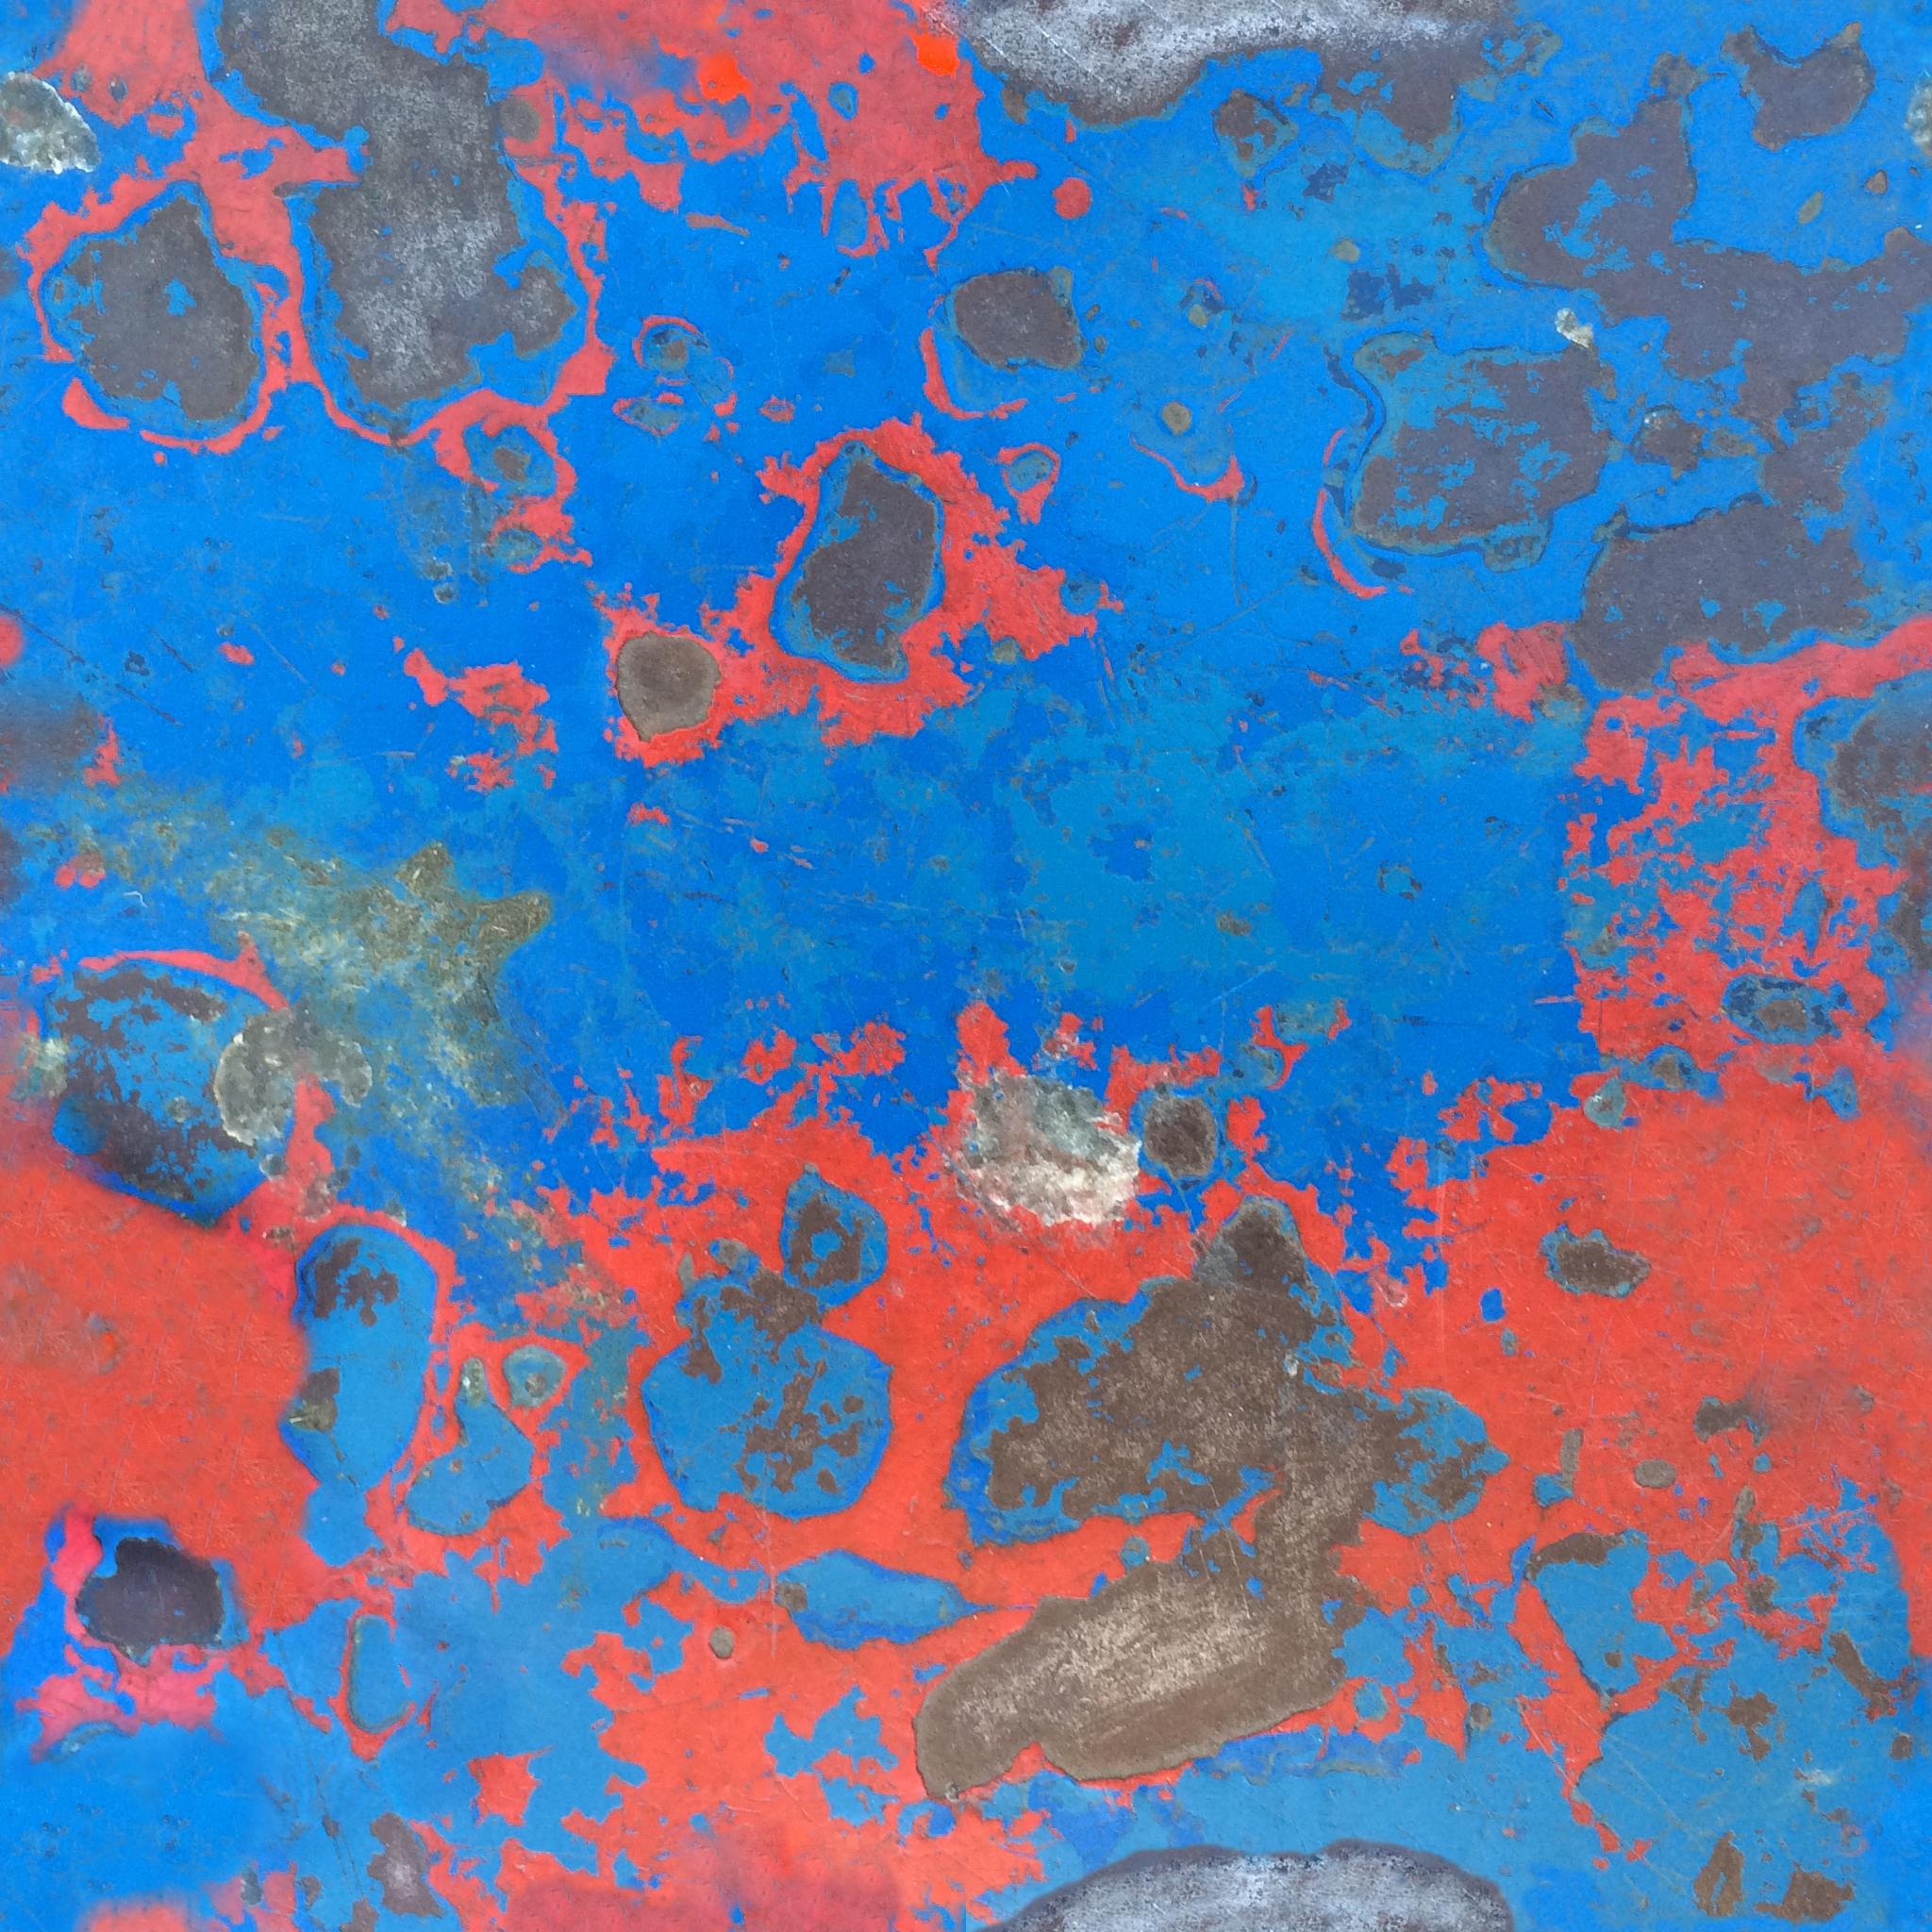 Old Metal Texture Png - File:Old Painted Metal Texture.png - Wikimedia Commons